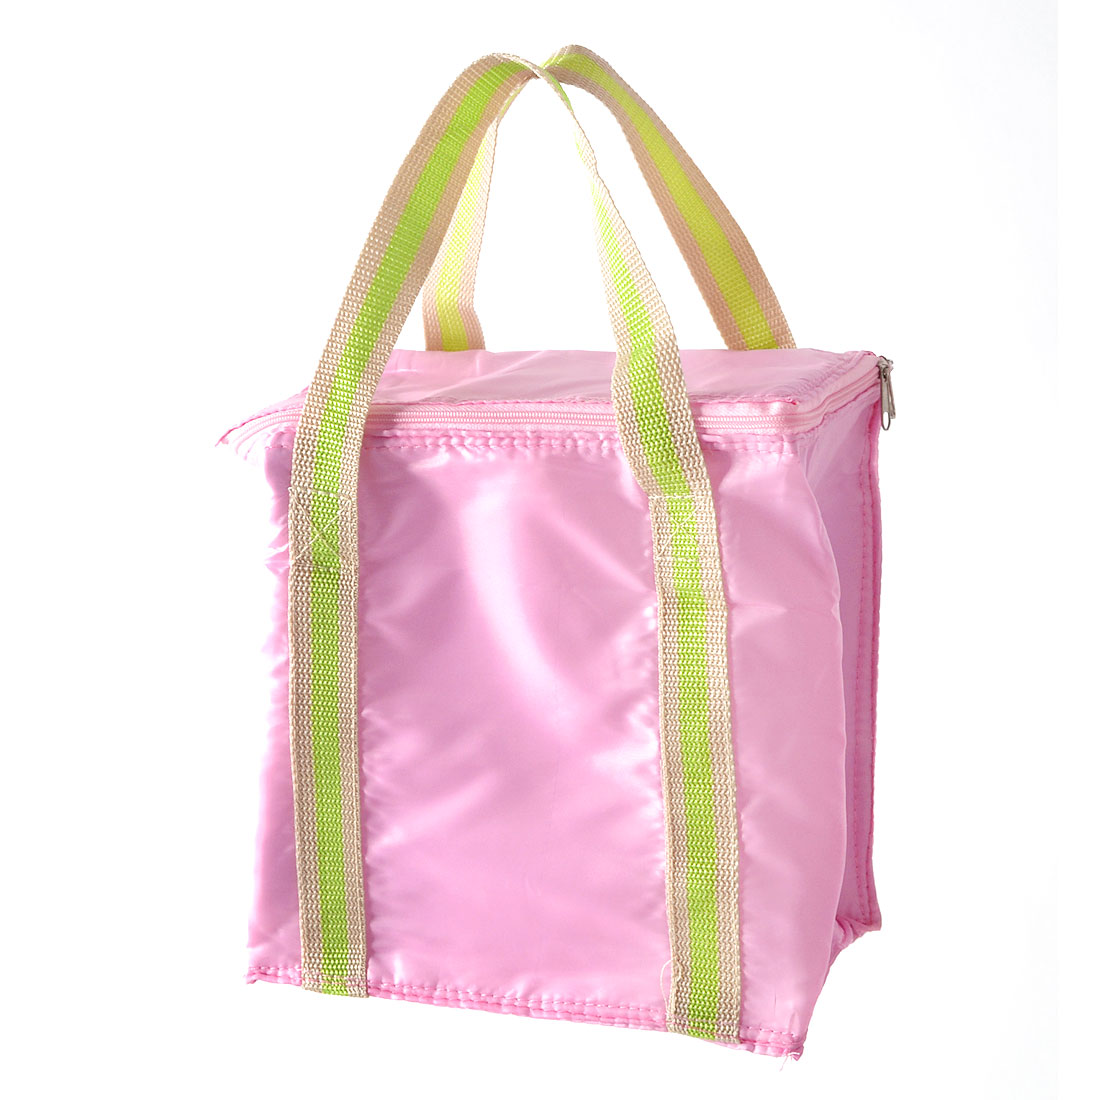 Camping Retangle Shape Insulated Lunch Drink Tote Picnic Cooler Bag Pink